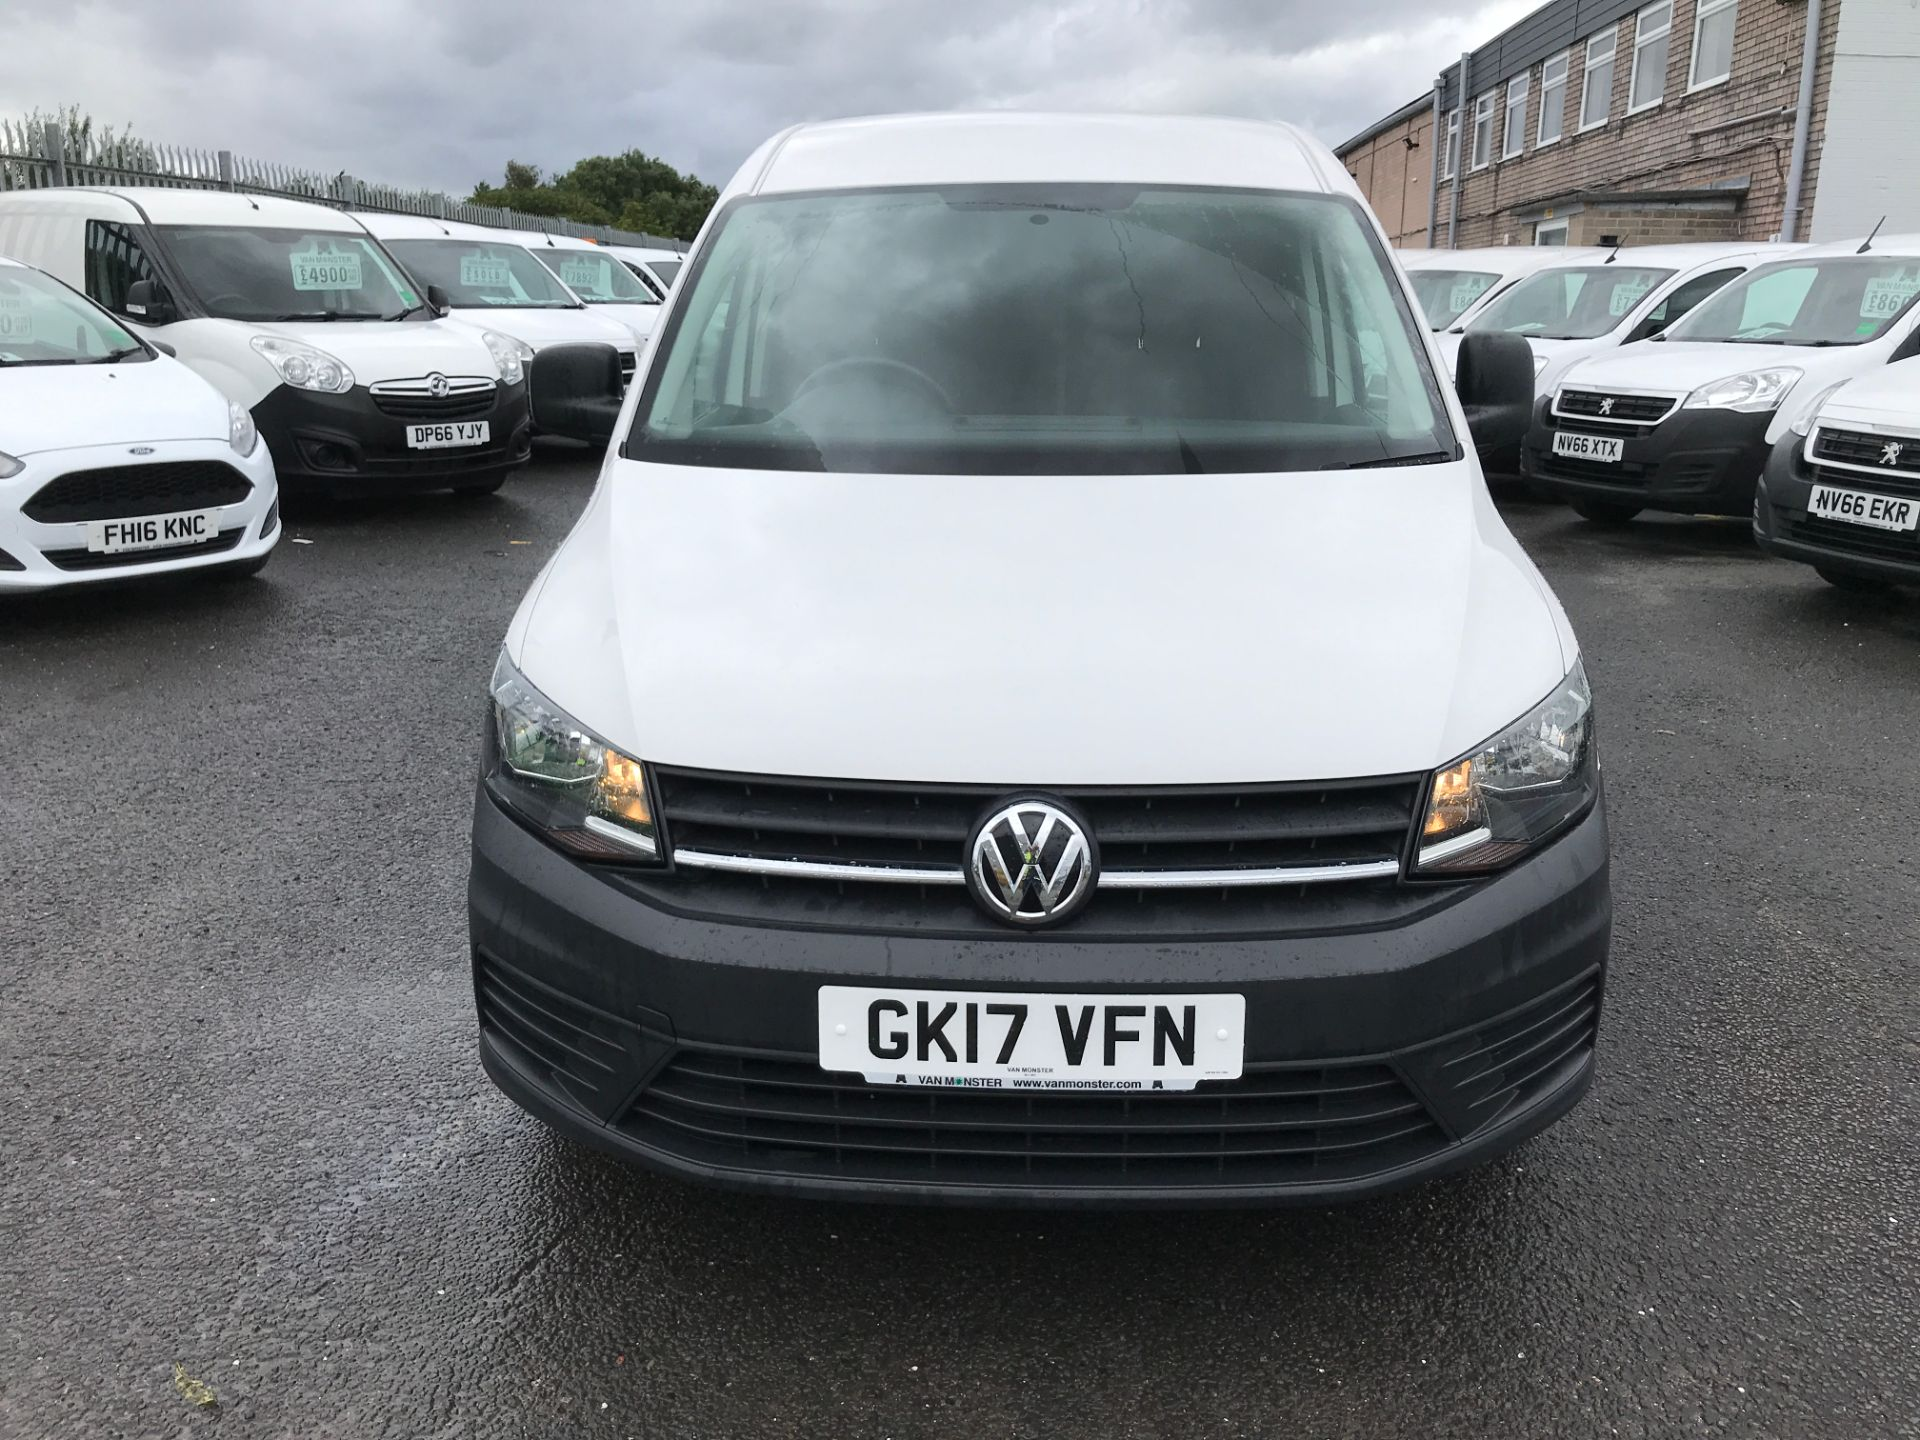 2017 Volkswagen Caddy Maxi 2.0TDI BLUEMOTION TECH 102PS STARTLINE EURO 6 (GK17VFN) Image 14